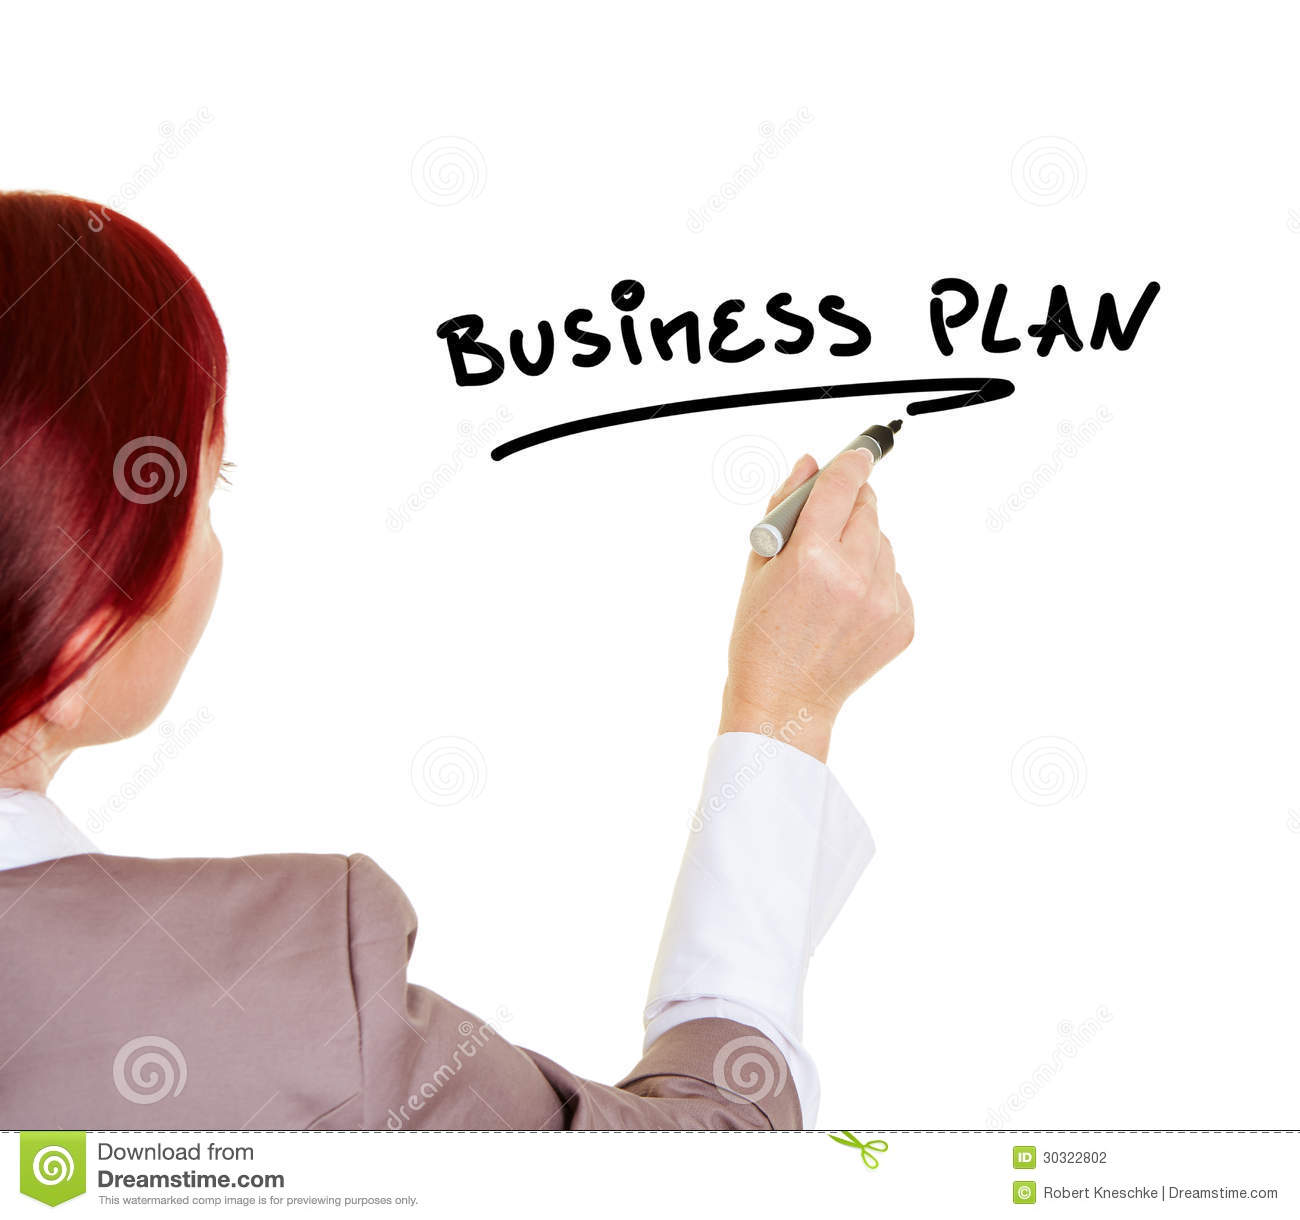 Write Your Business Plan